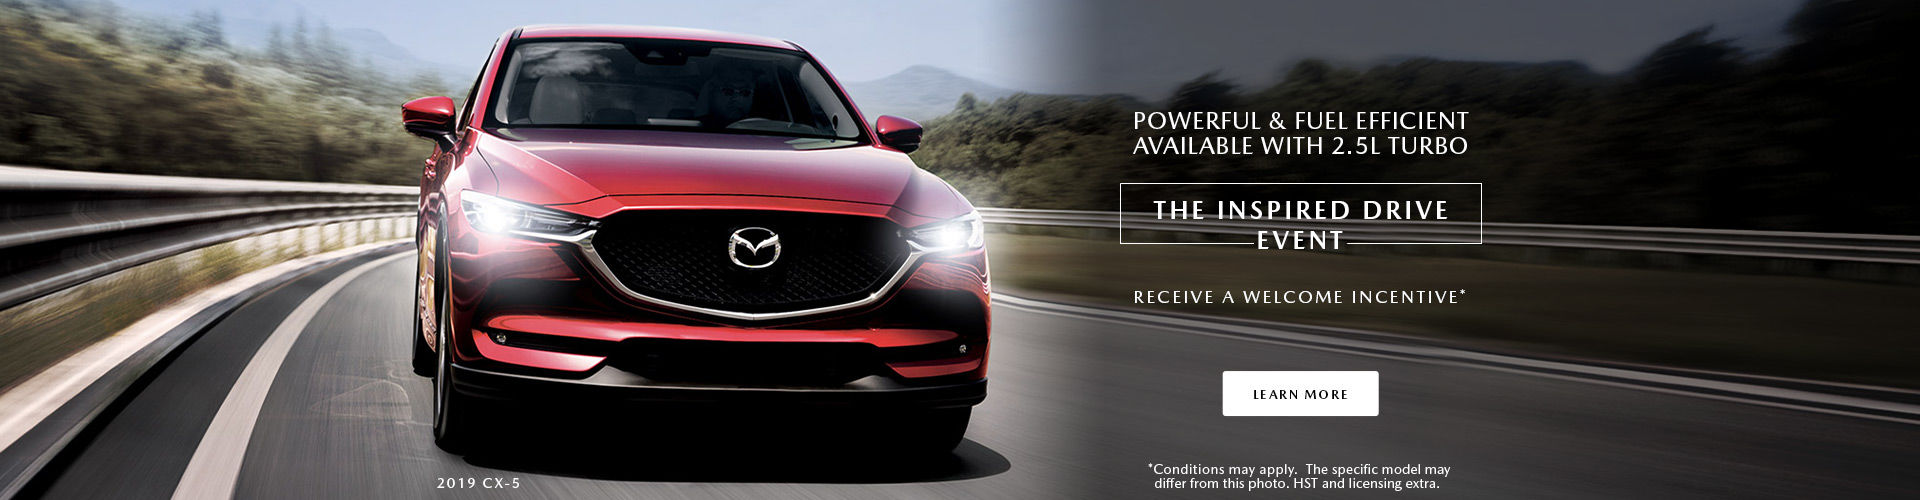 The inspired drive event - Mazda